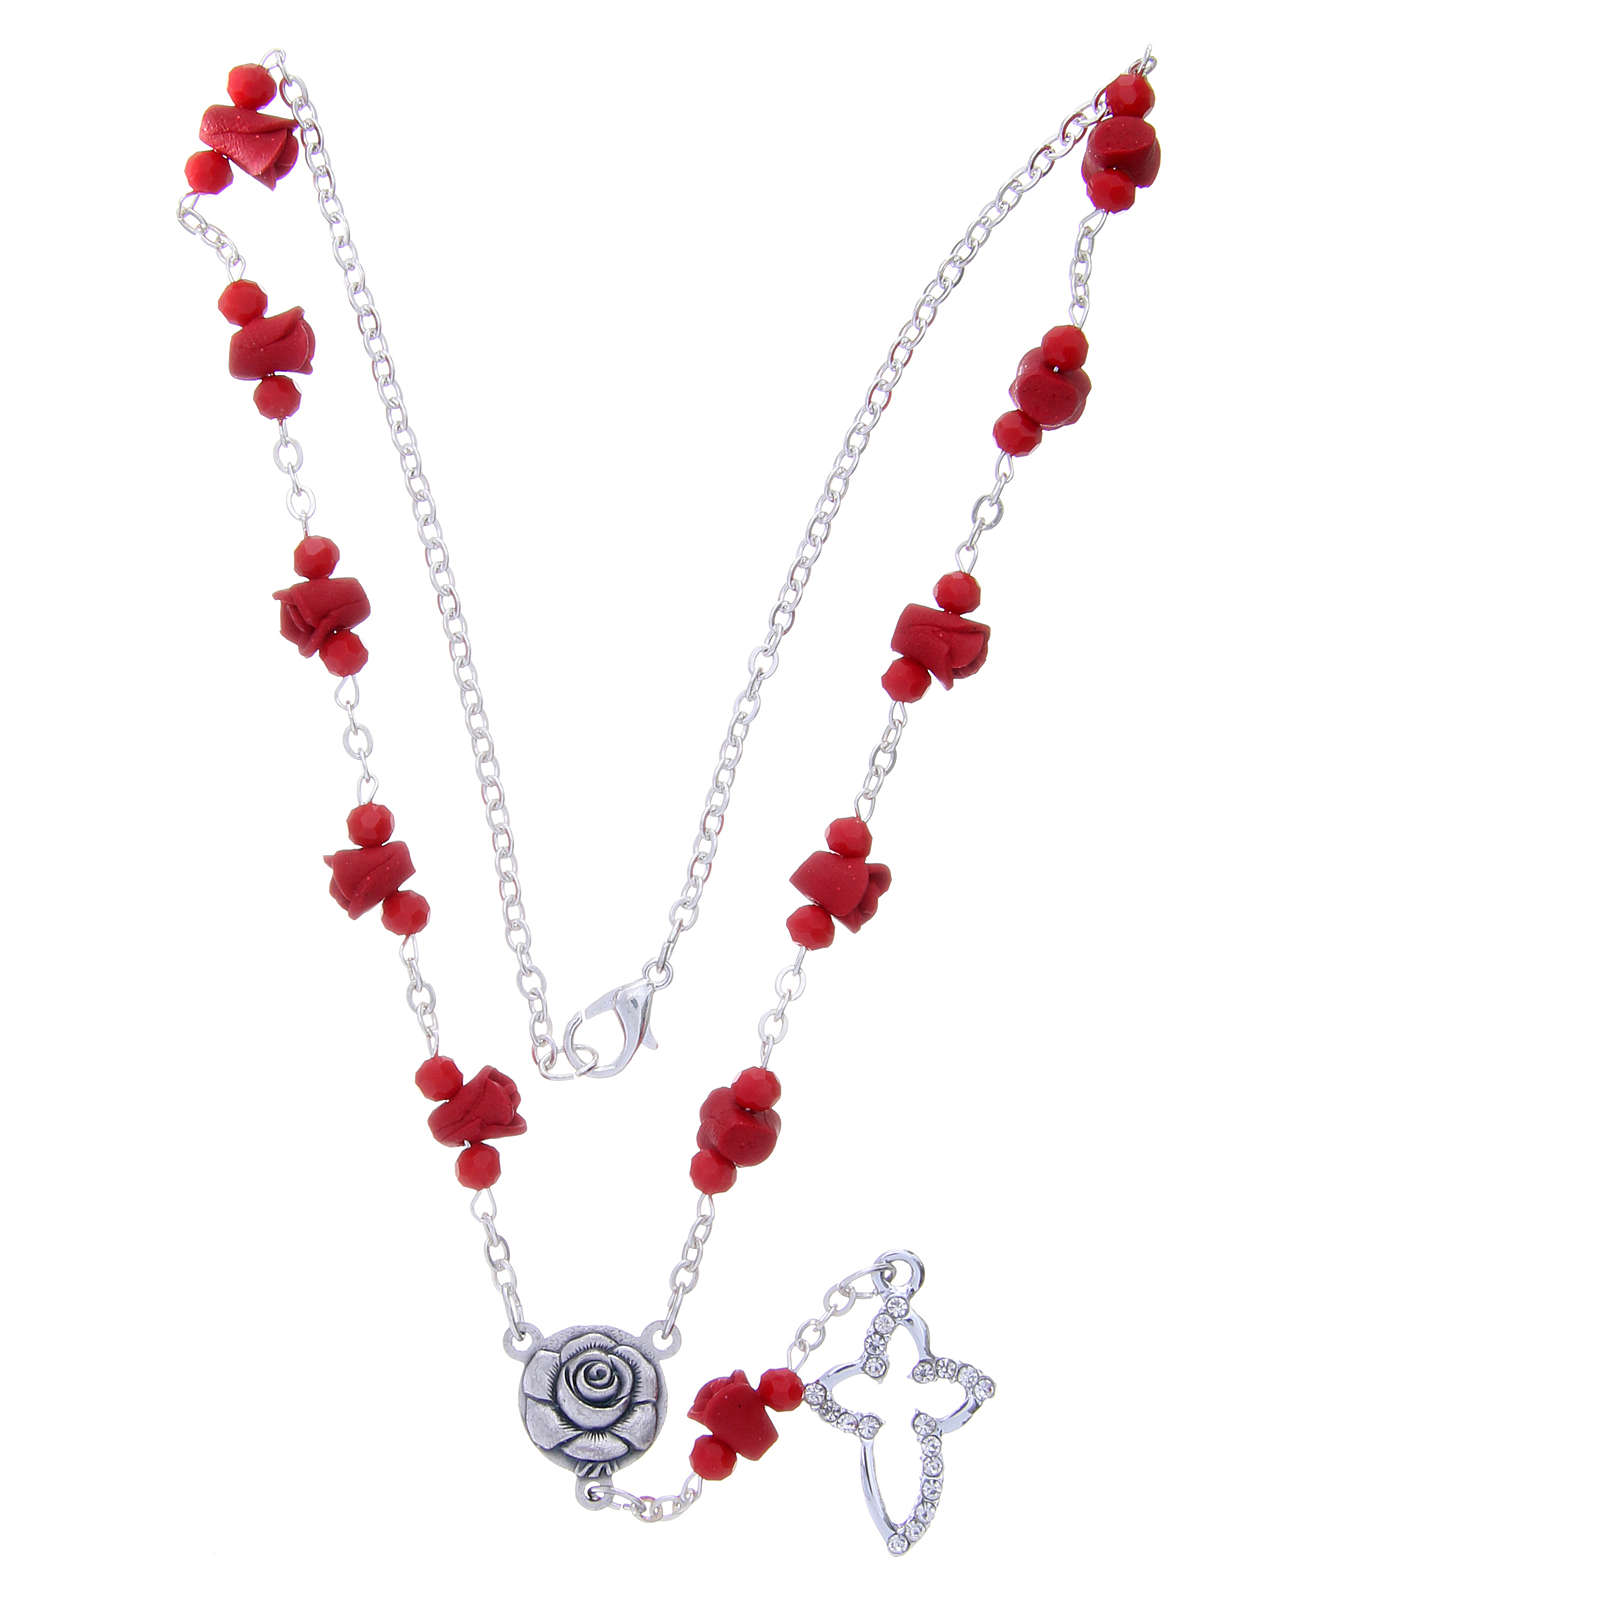 Medjugorje Rosary necklace, red with ceramic roses and grains in crystal 4